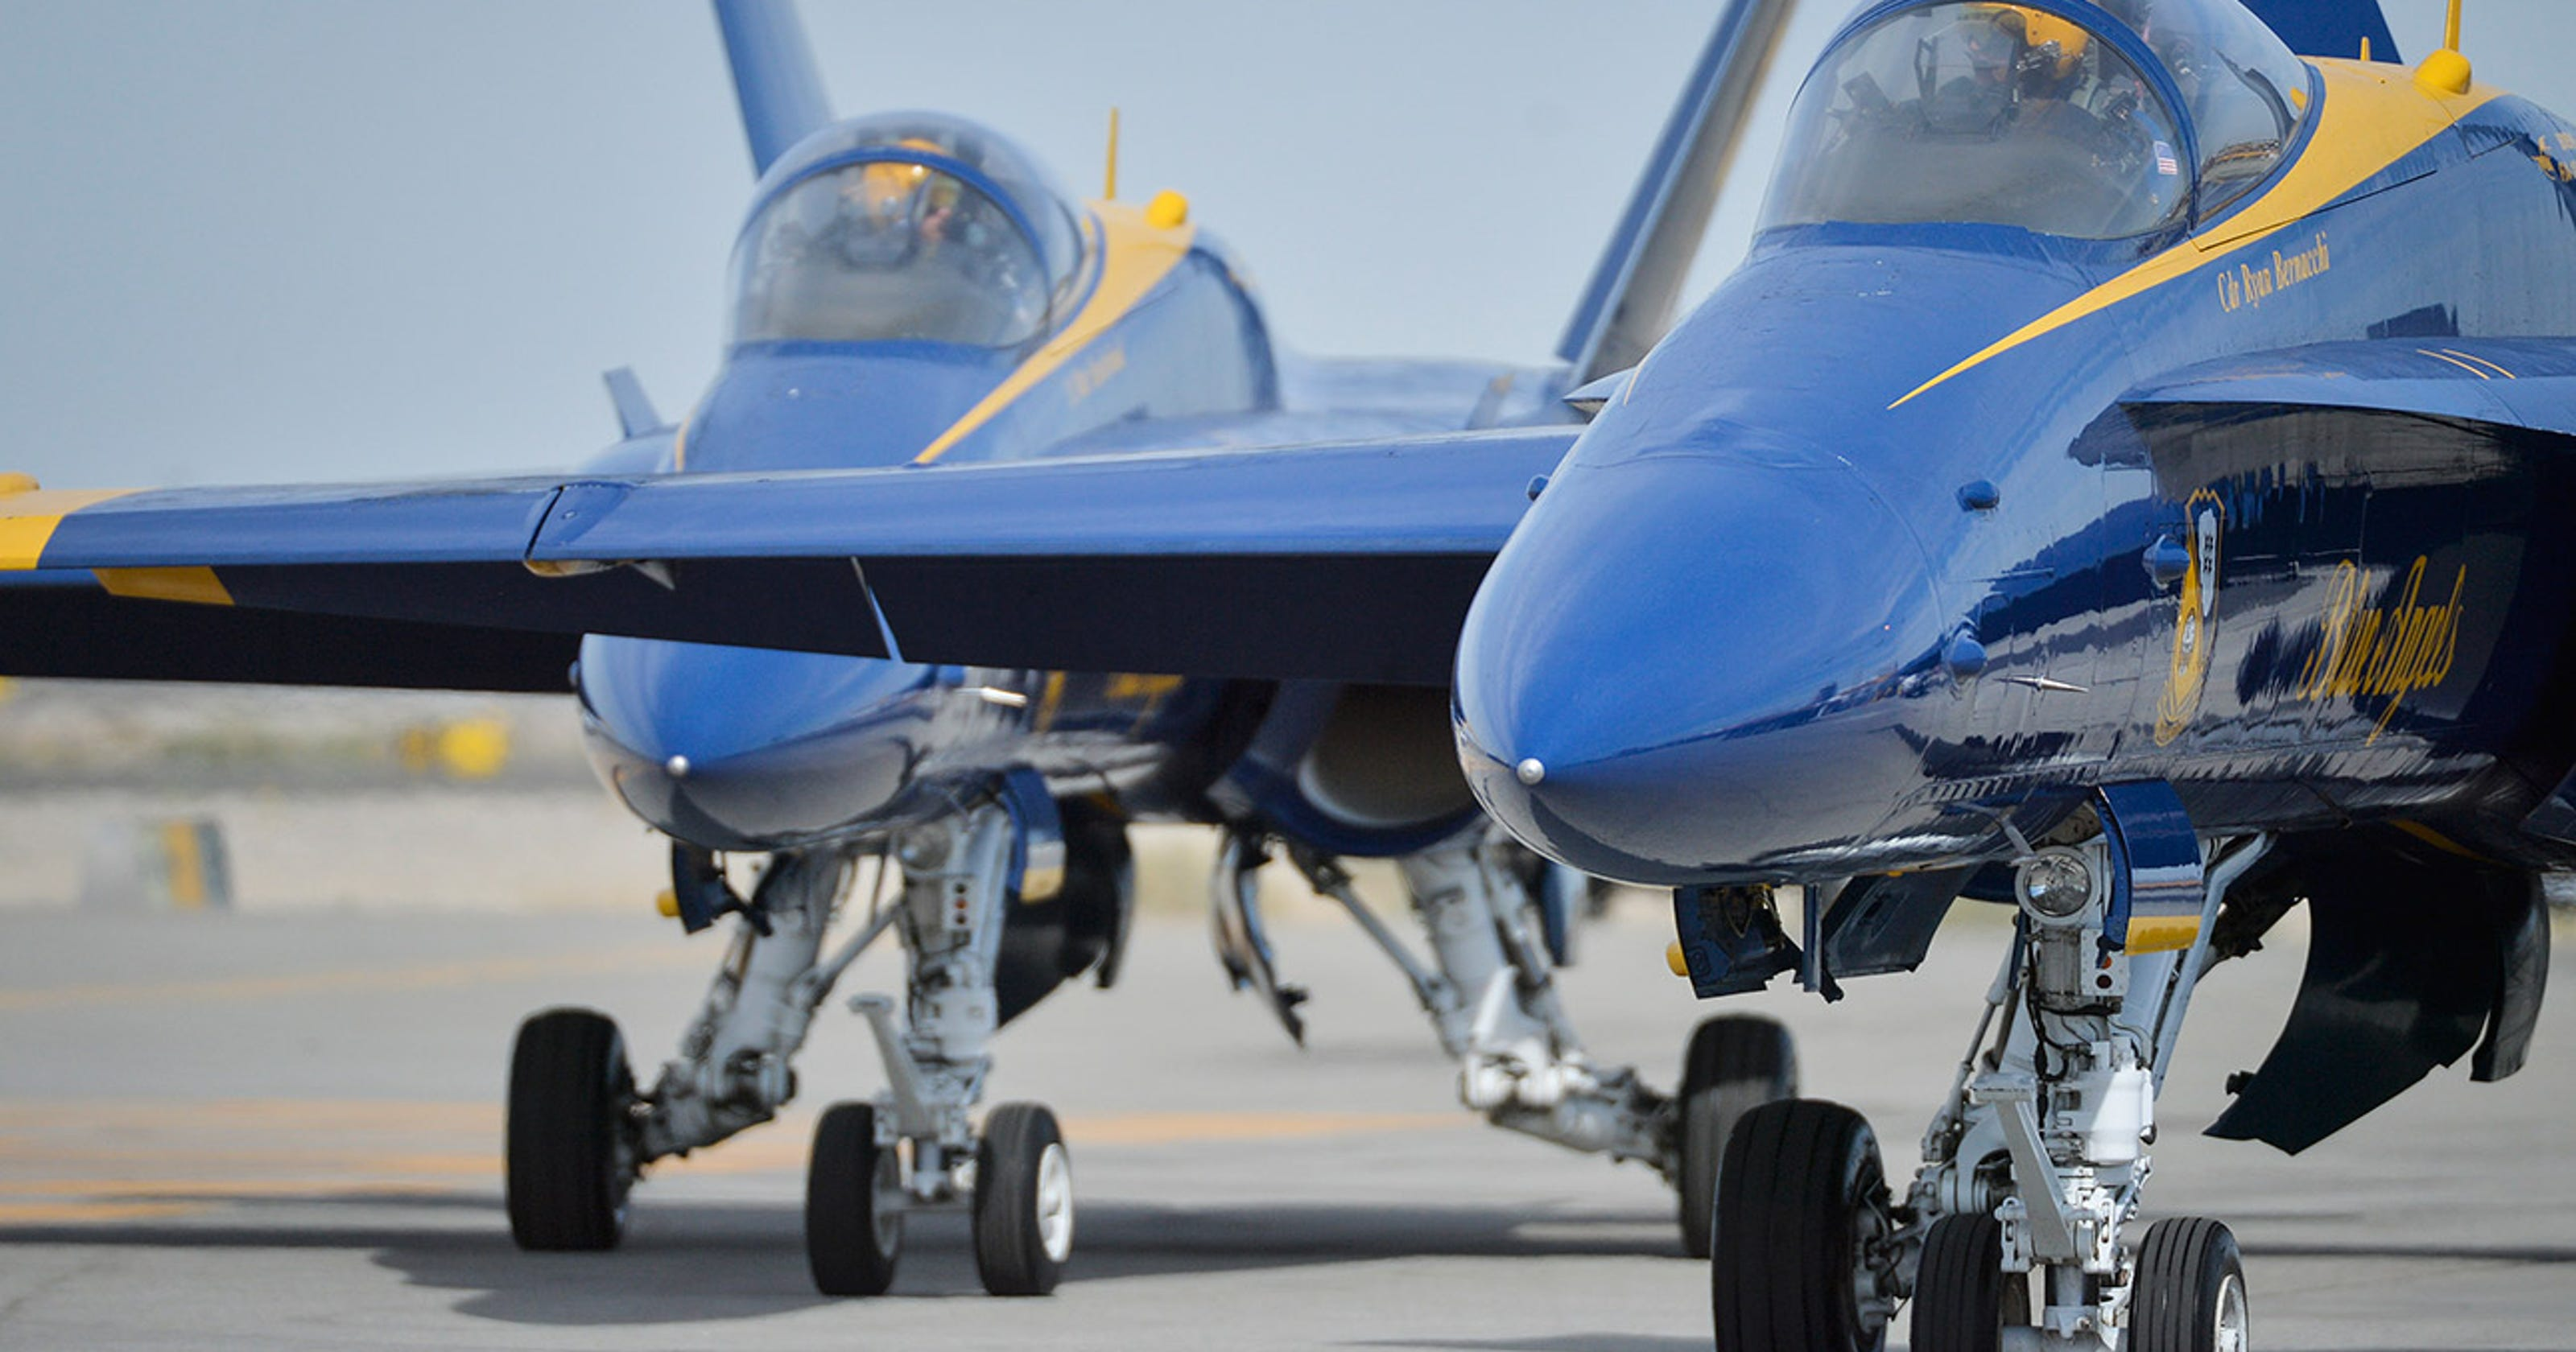 Fast Facts about the Blue Angels, the Navy's Flight Demonstration